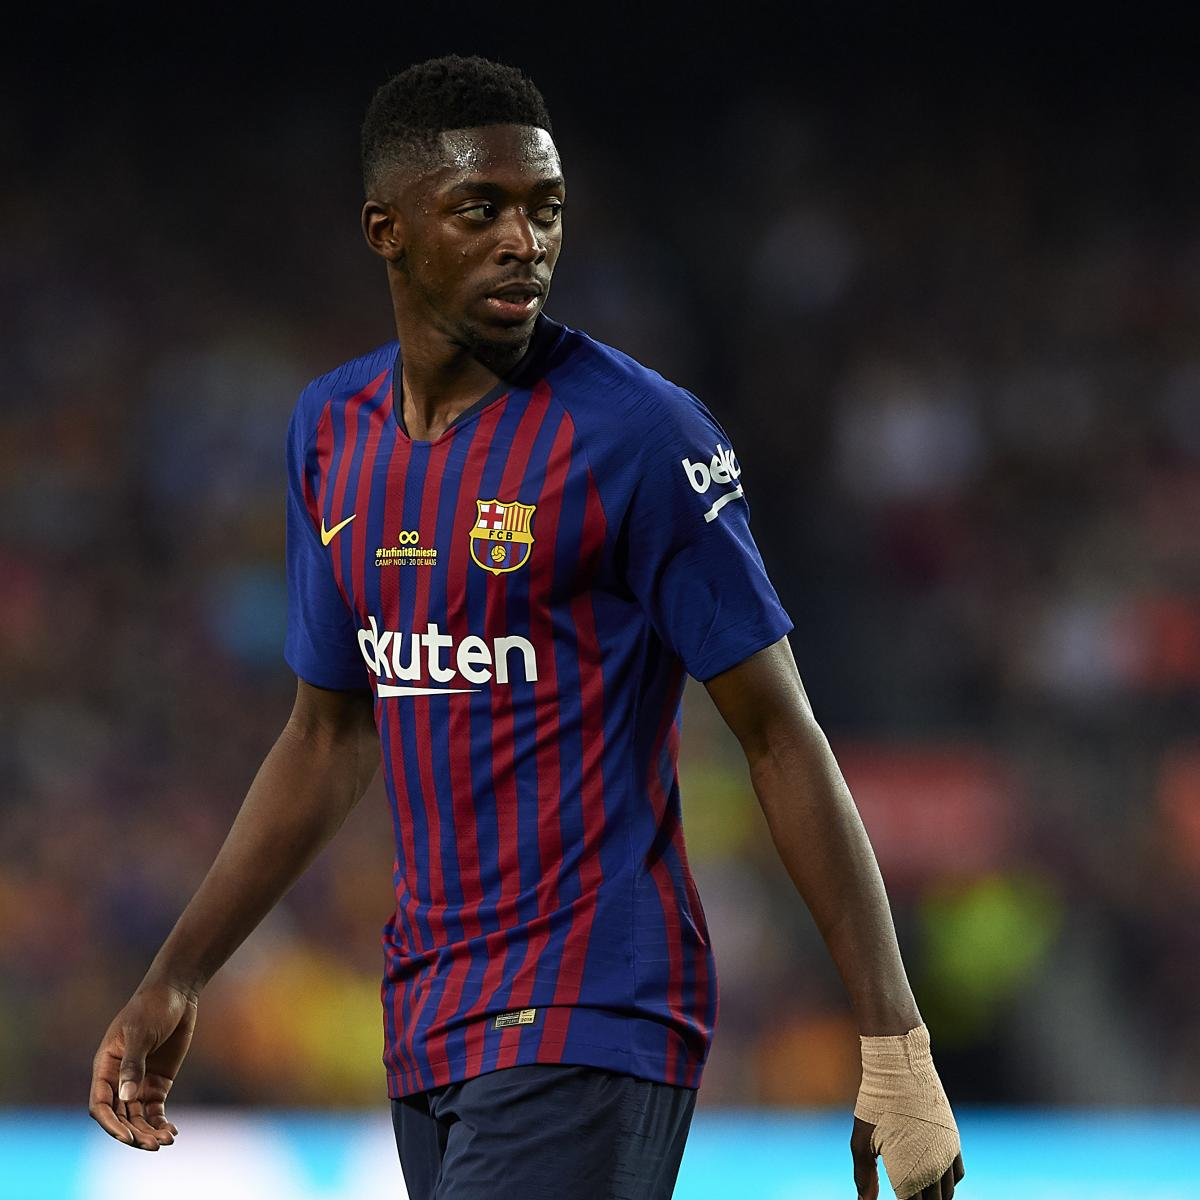 Barcelona Transfer News: Ousmane Dembele Rules out Exit Amid Arsenal Rumours